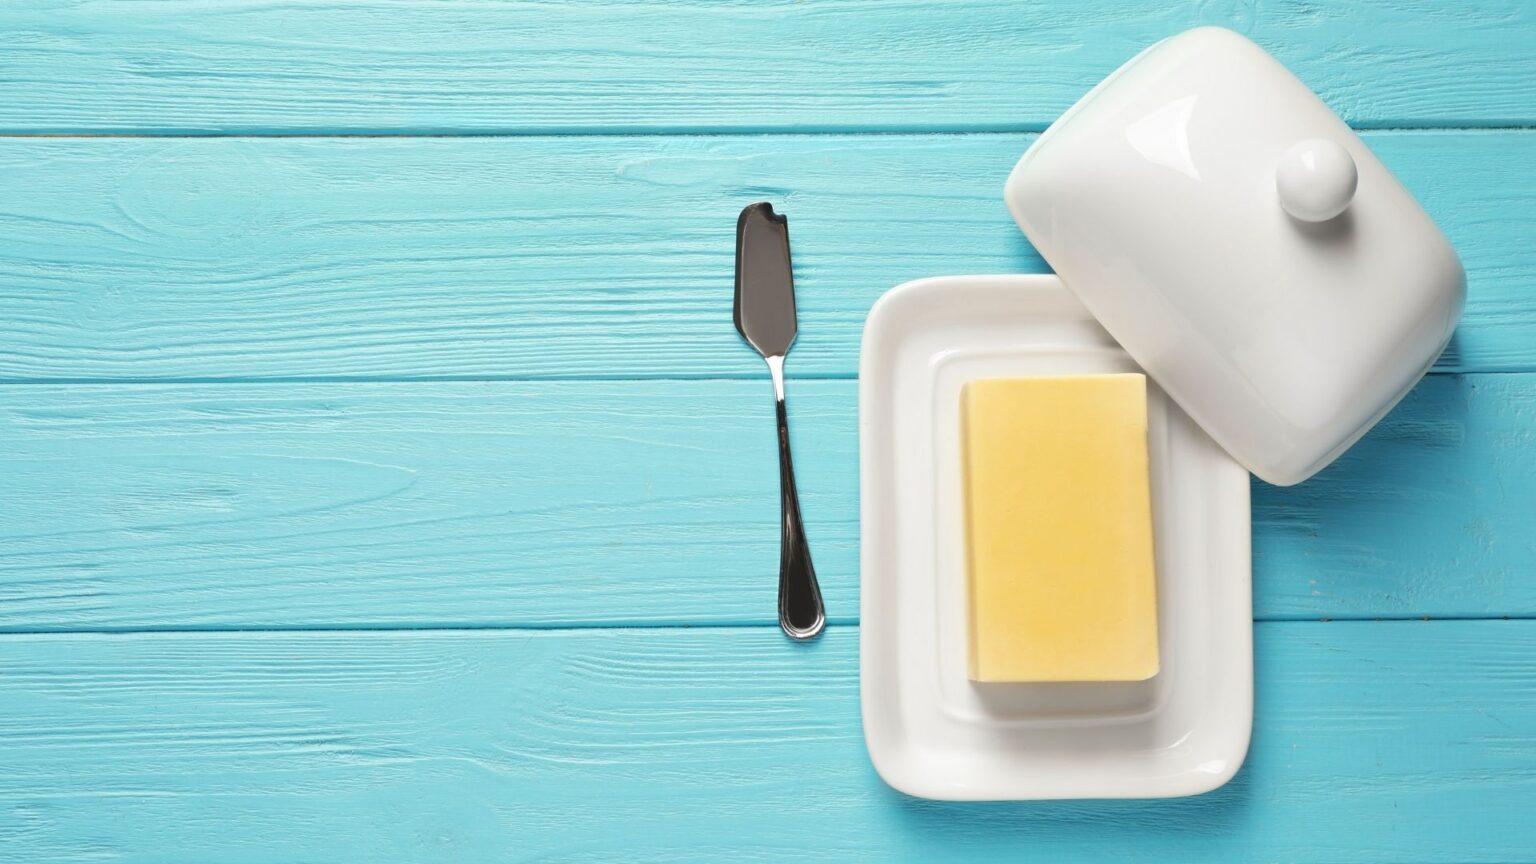 Butter Dish - Comparison of Materials and Models